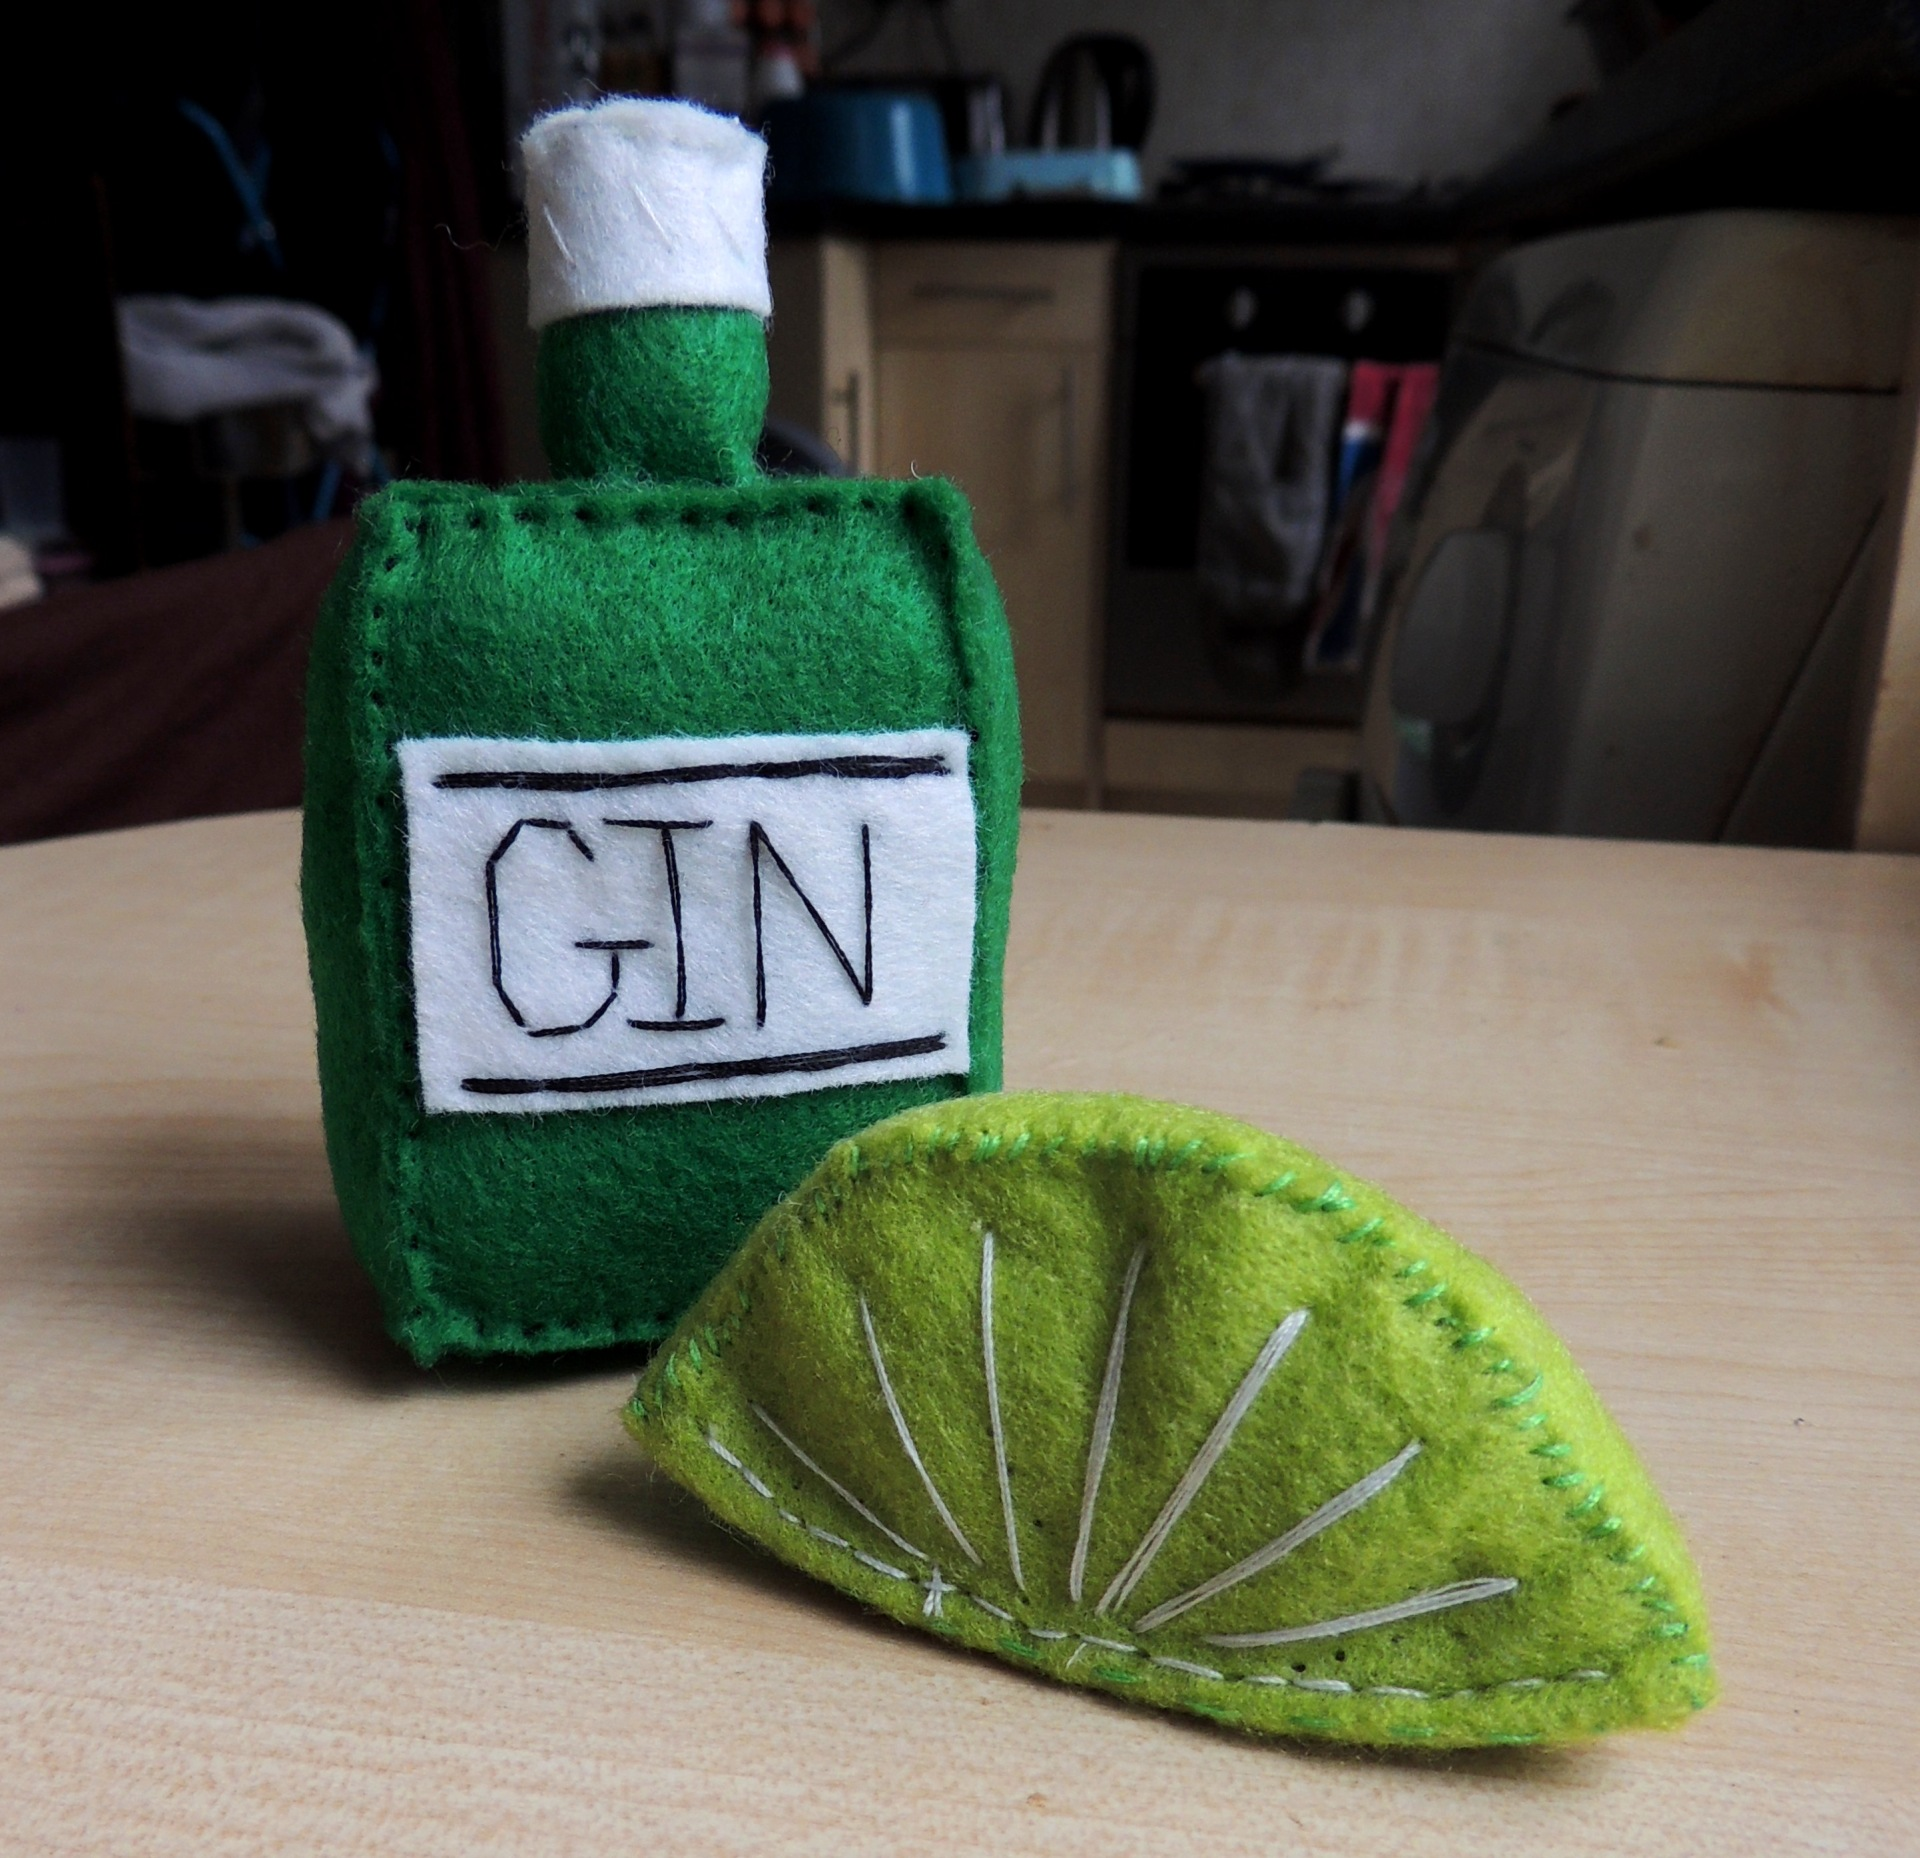 felt gin and felt lime